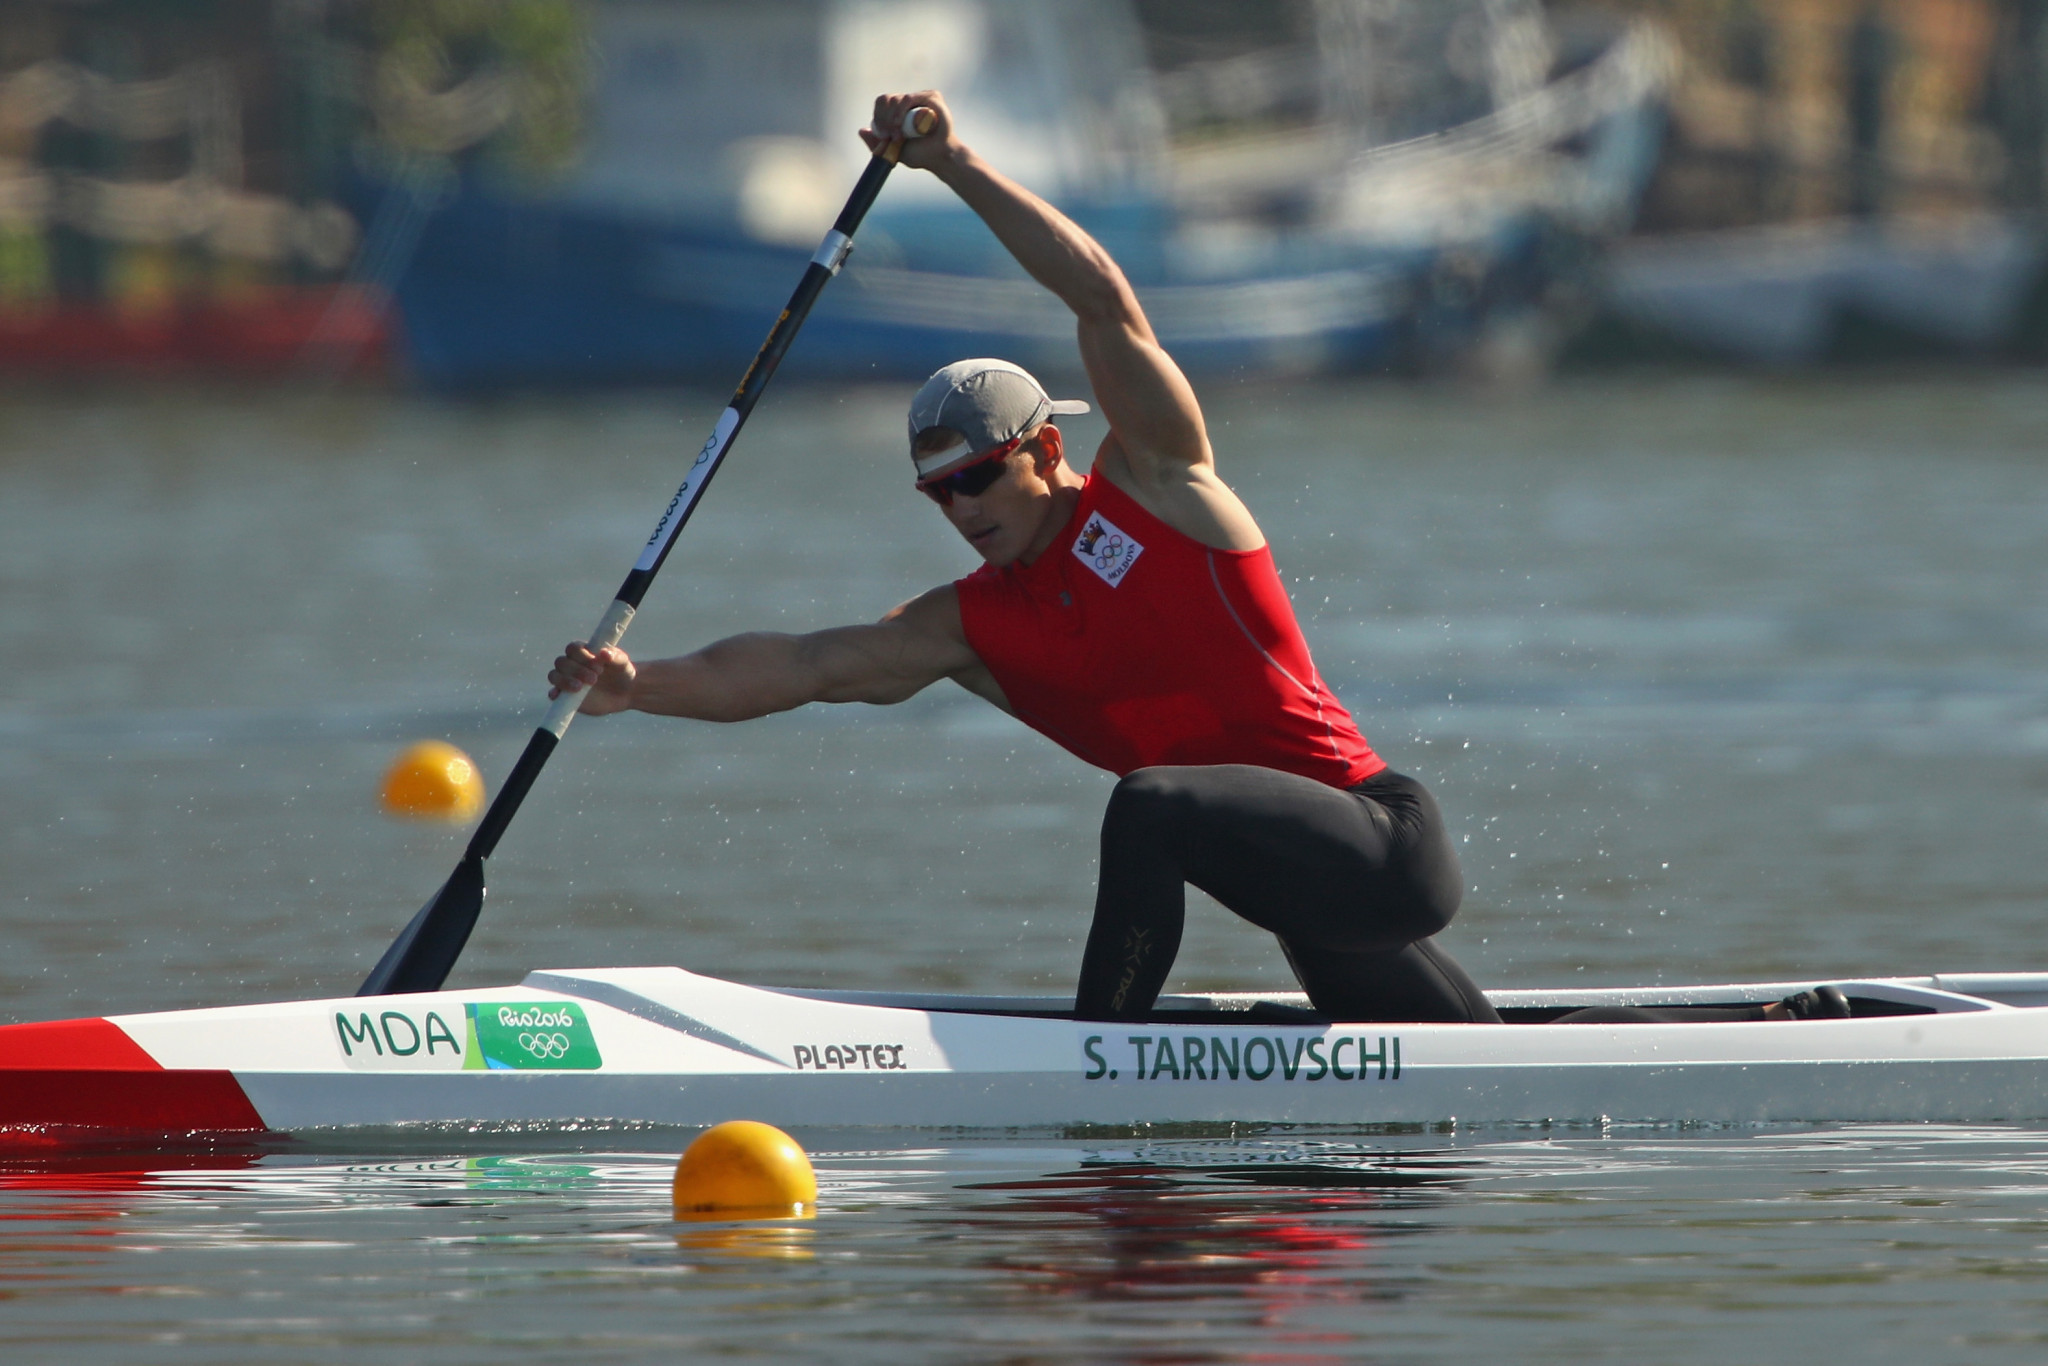 Serghei Tarnovschi, who was stripped of his Rio 2016 bronze medal due to a positive doping test, was among the winners on the final day at the ICF Canoe Sprint World Cup in Russia ©Getty Images